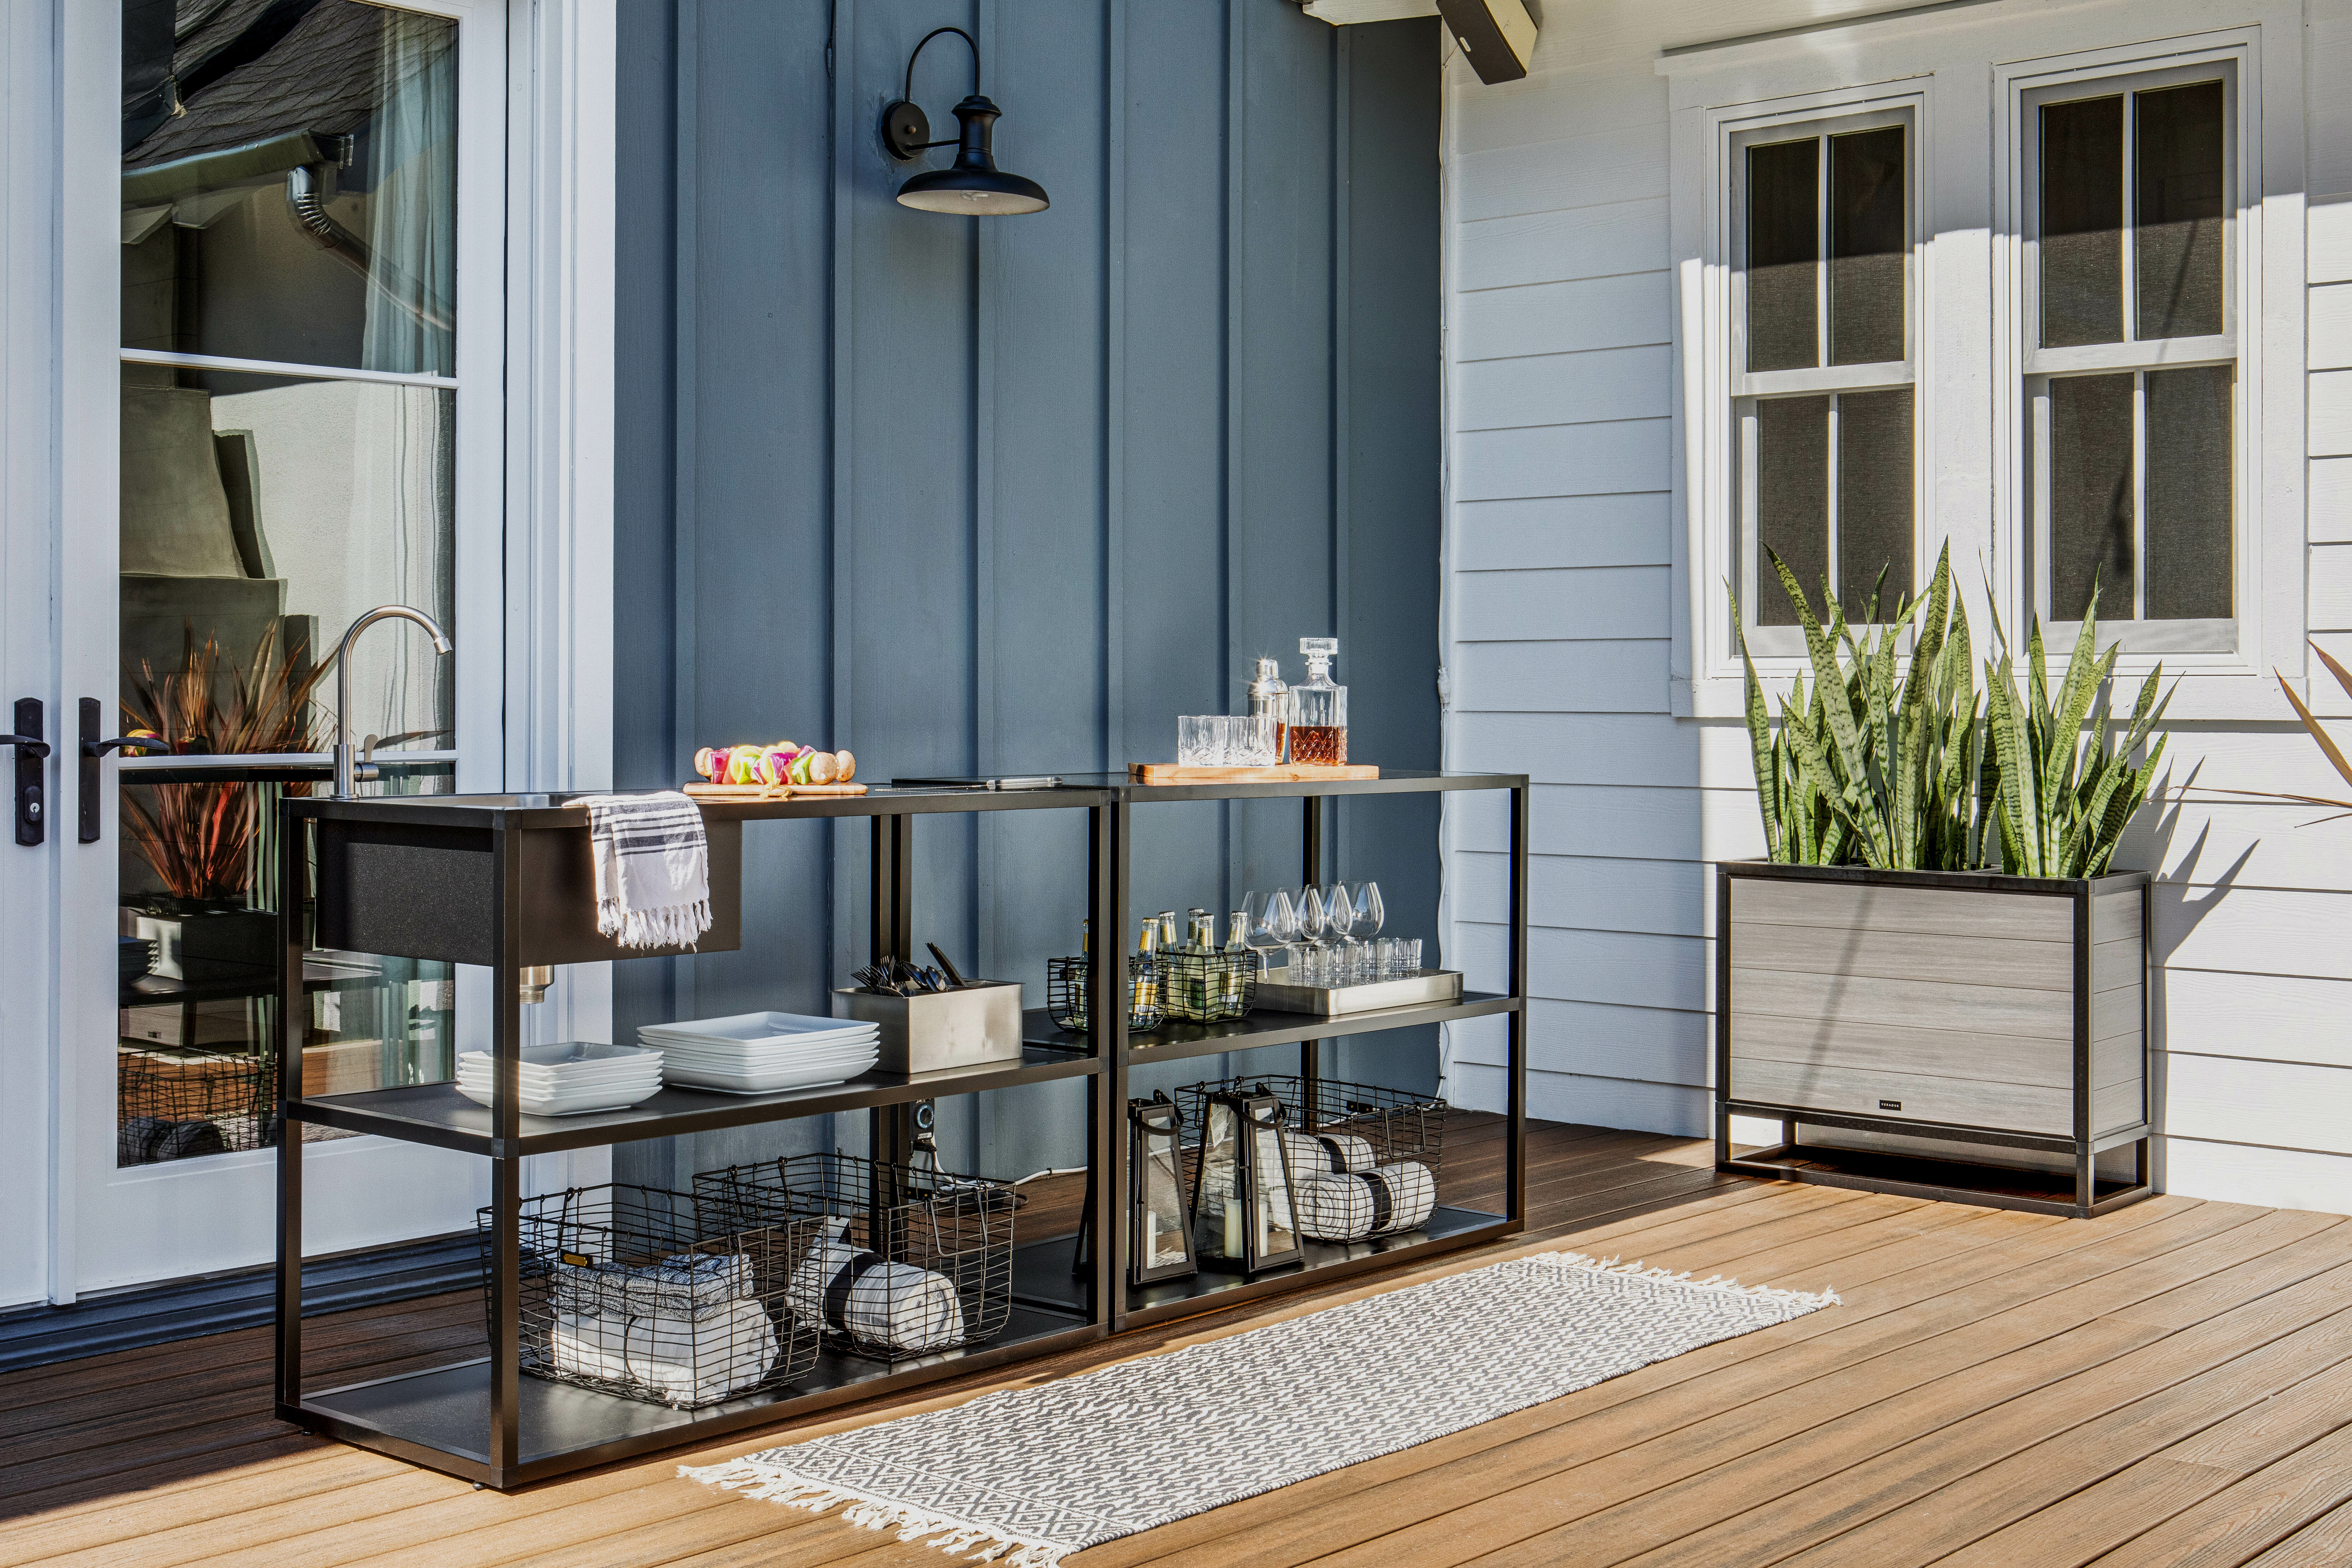 Outdoor Kitchen Series 5-Piece Modular Kitchen with Sink